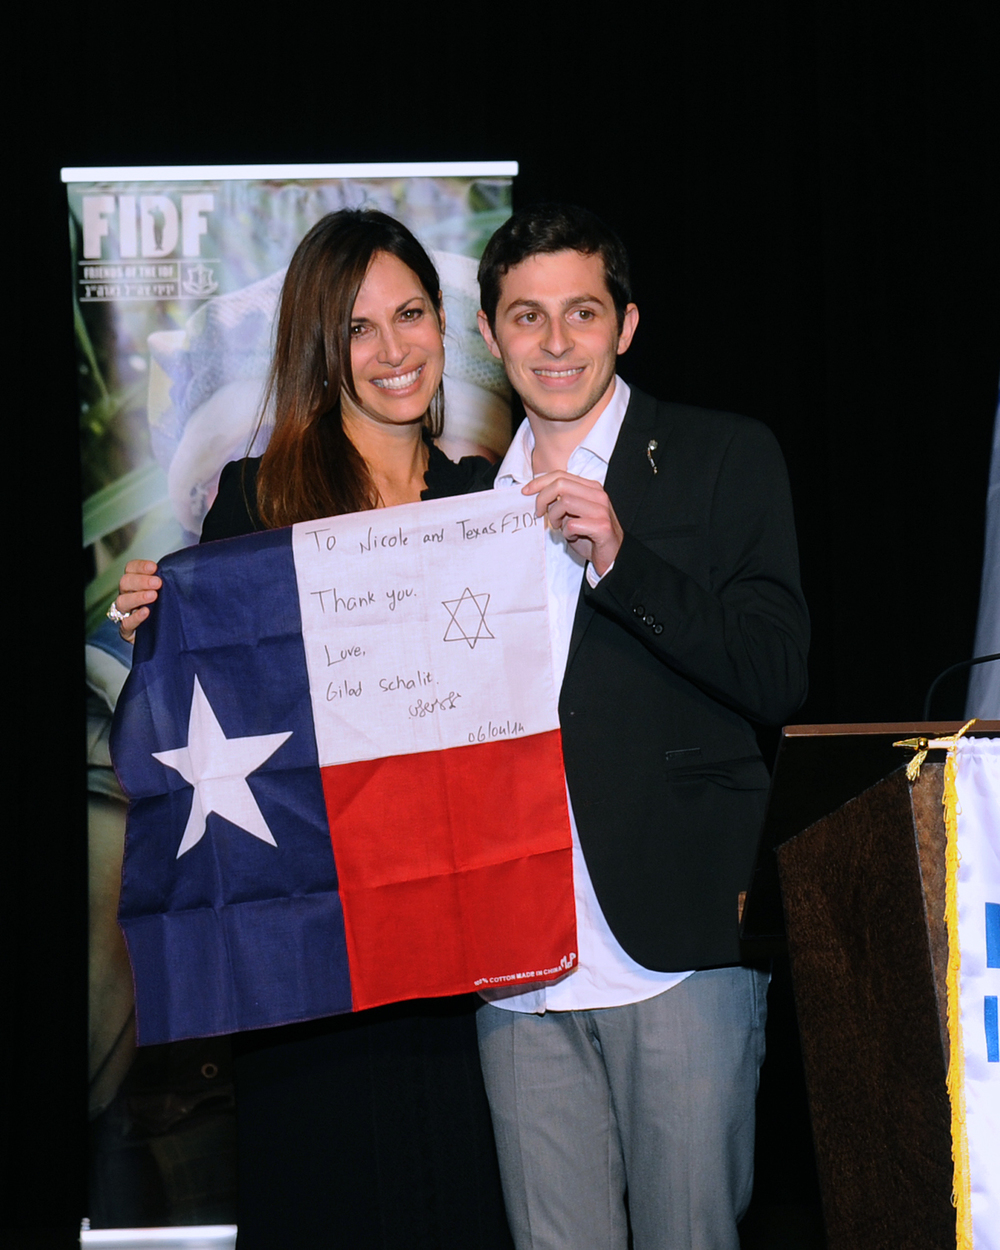 National FIDF Board of Directors member and Texas Chapter Chair Nicole Lowenstein with former Hamas captive Gilad Shalit at the April 6 FIDF gala in Houston. Credit: Alan Ross.